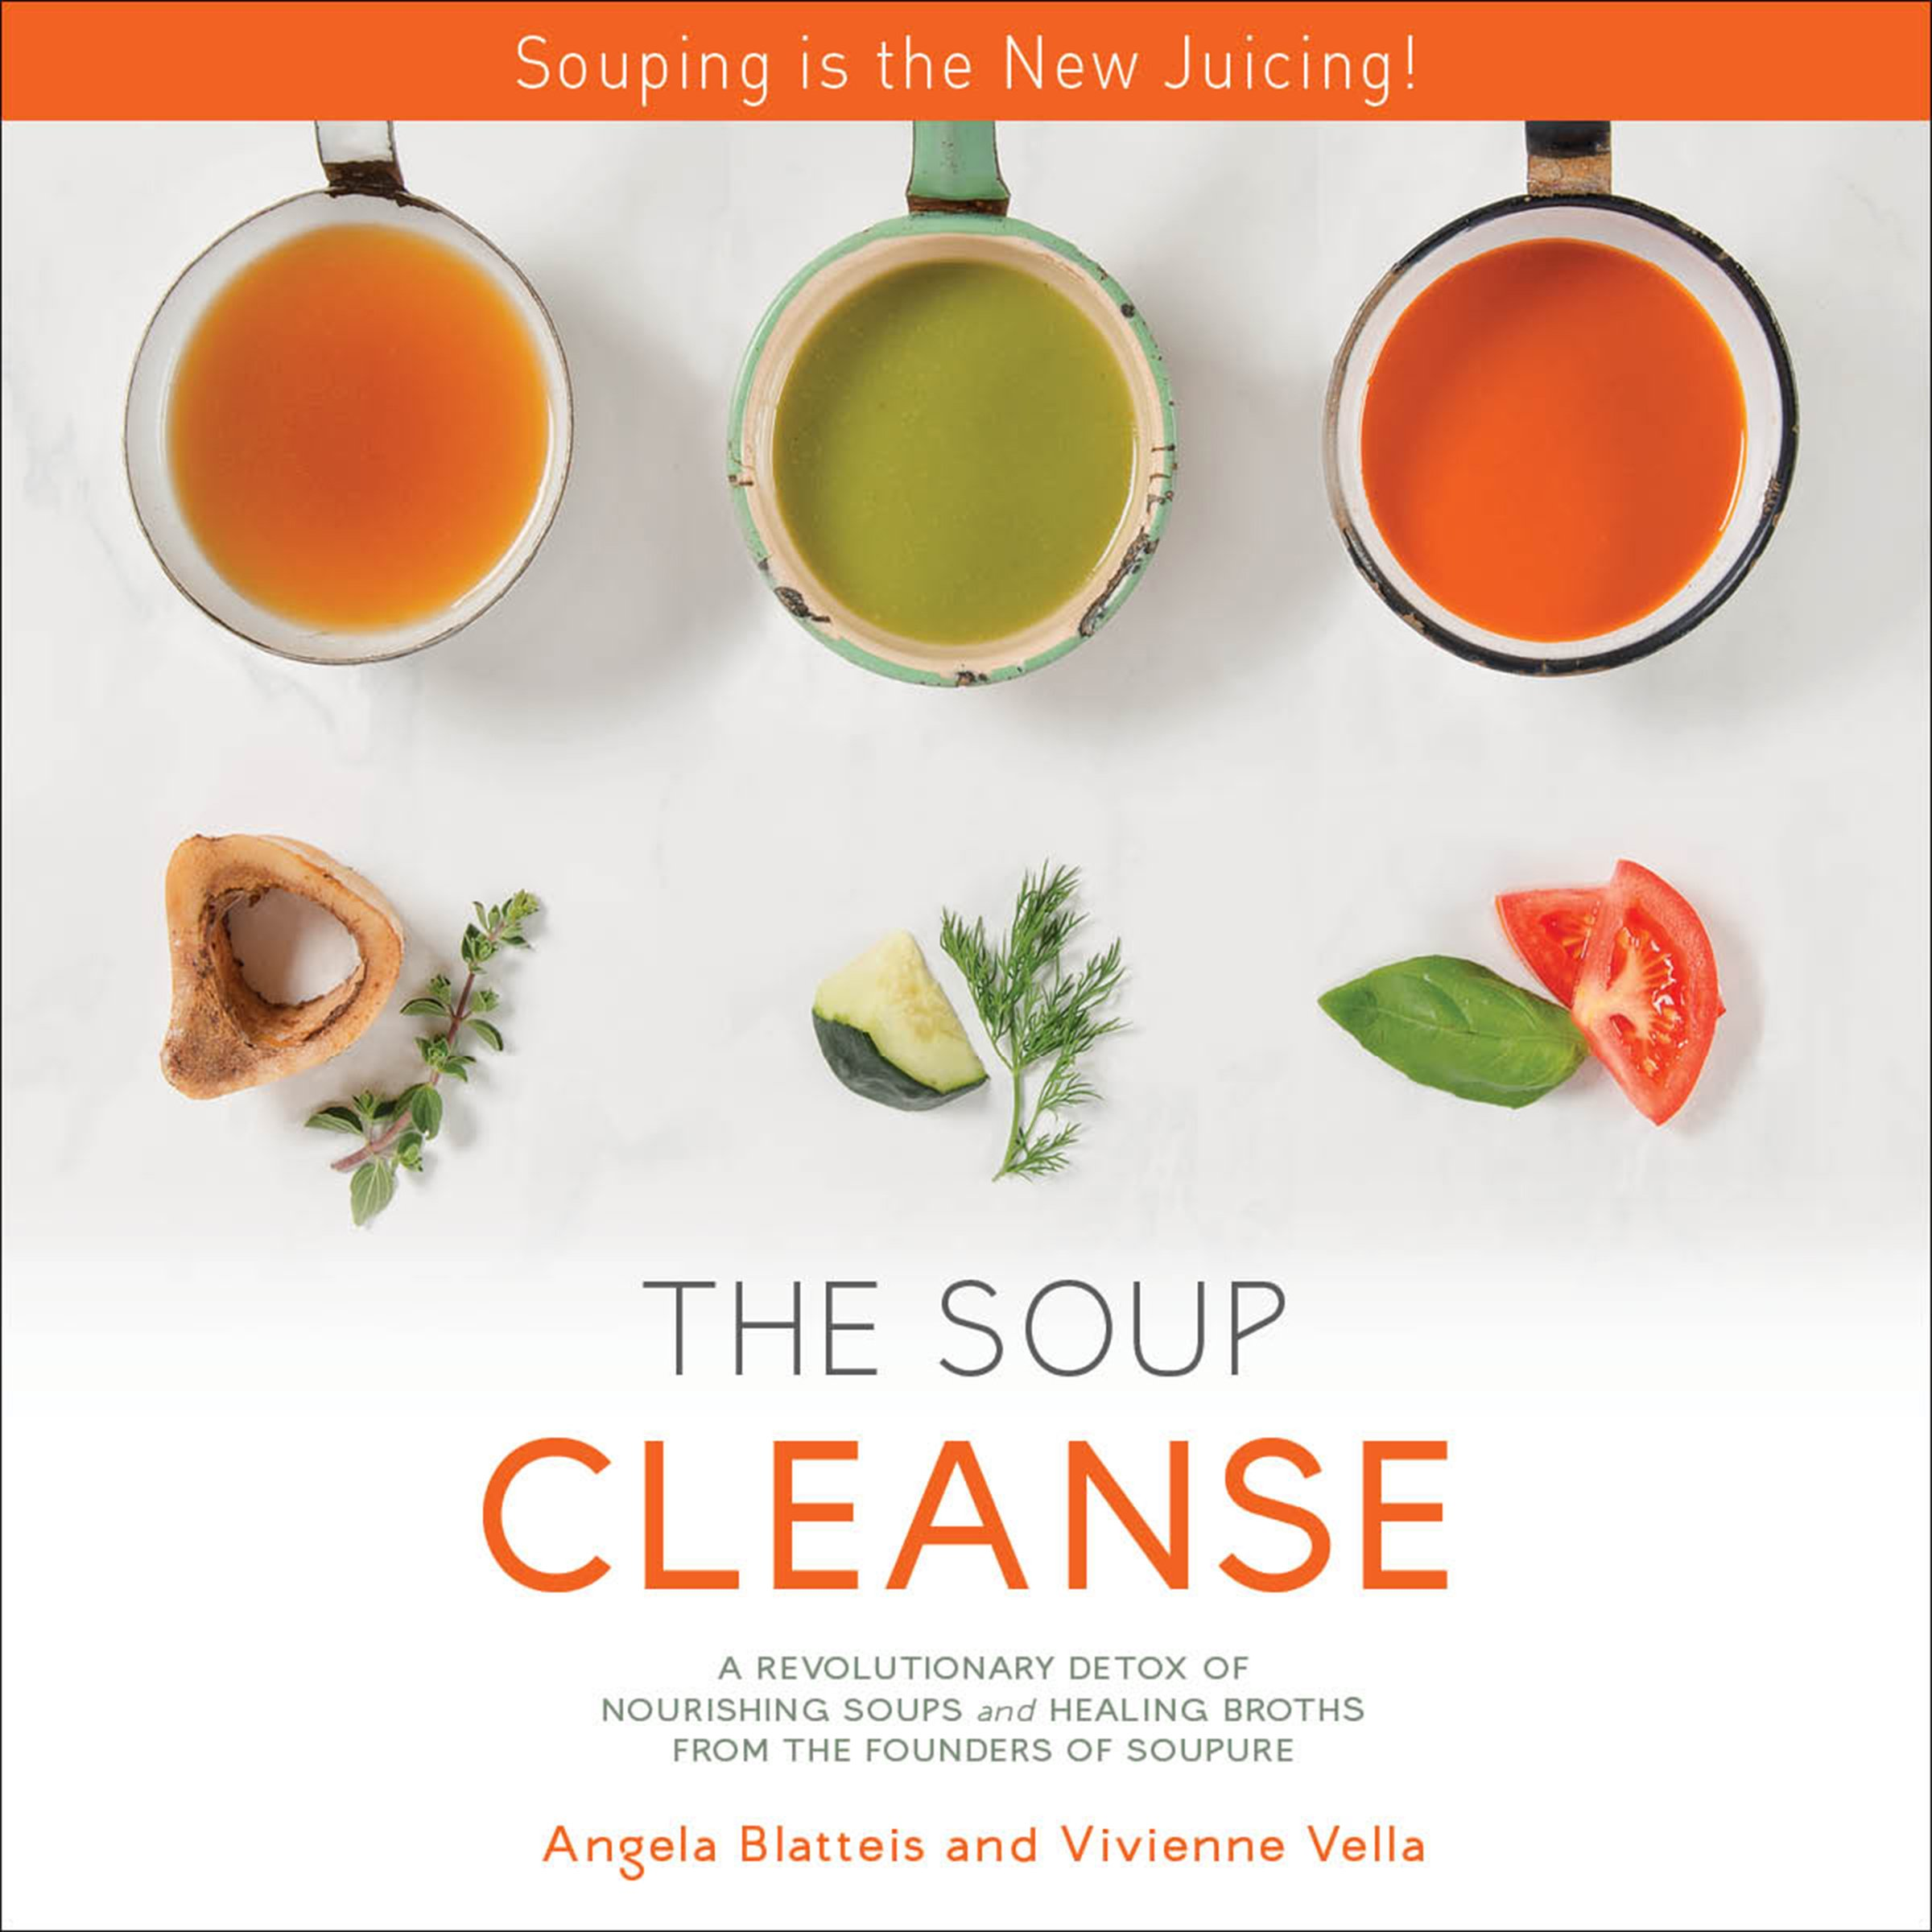 The Soup Cleanse: A Revolutionary Detox of Nourishing Soups and Healing Broths from the Founders of Soupure